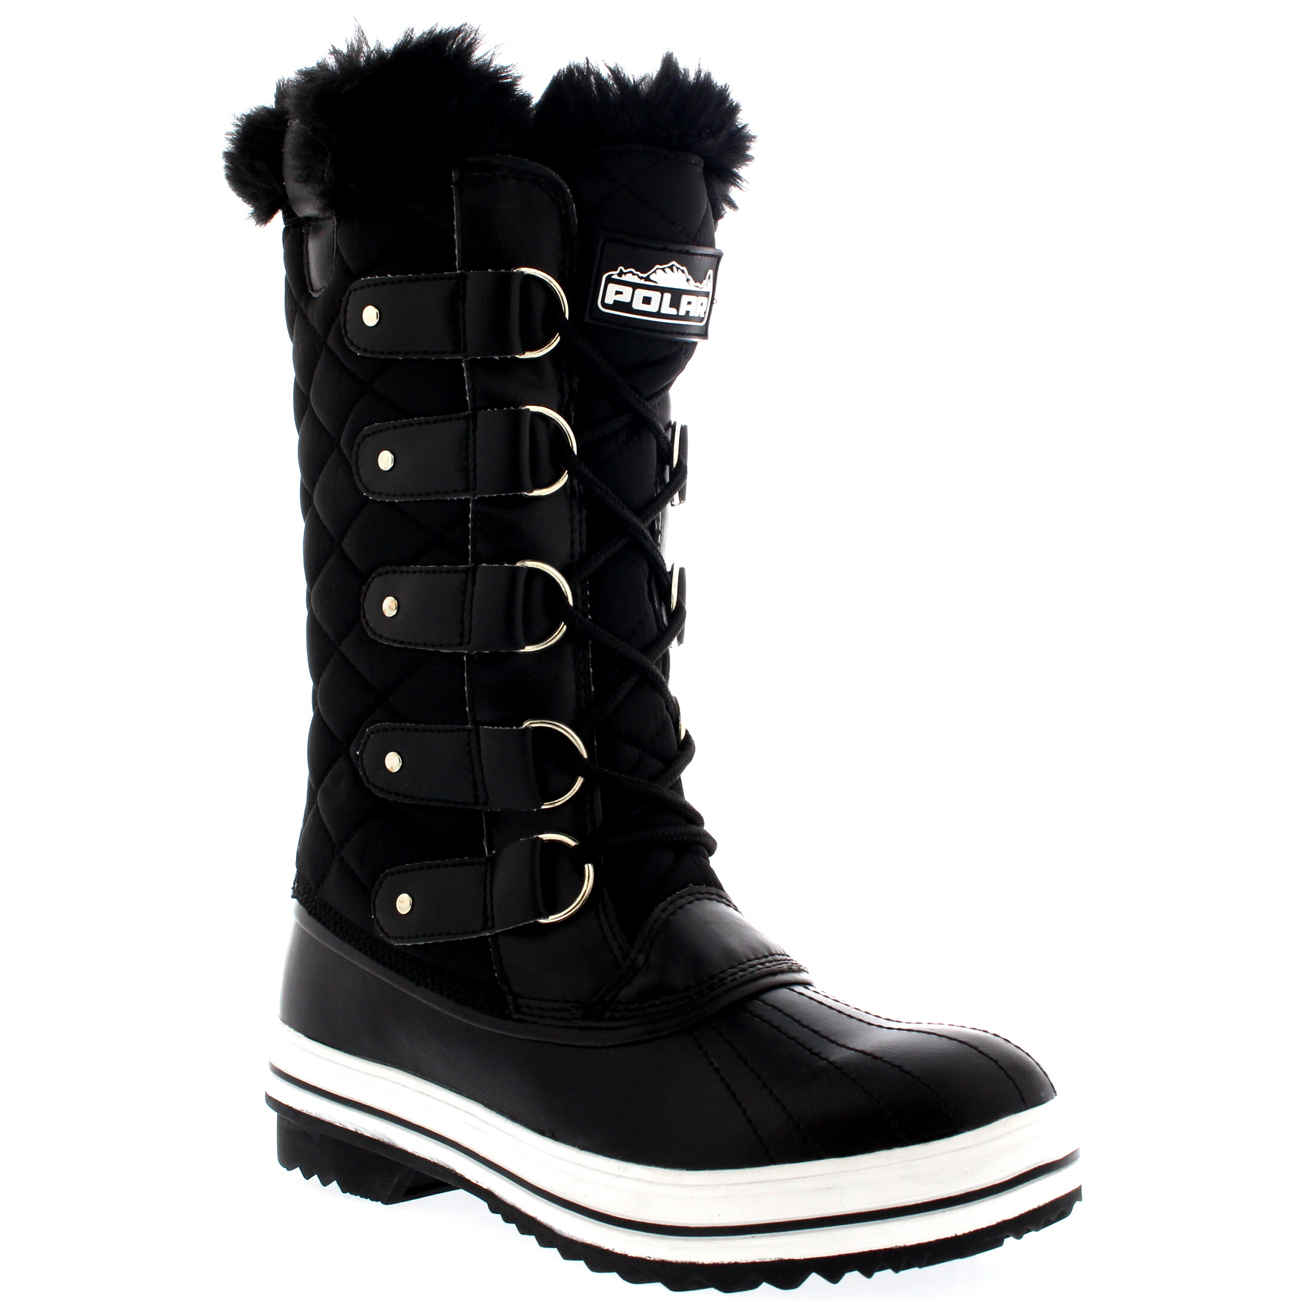 Wonderful WomensQuiltedRainLaceUpFurLinedWarmShoesDuckWinterSnow